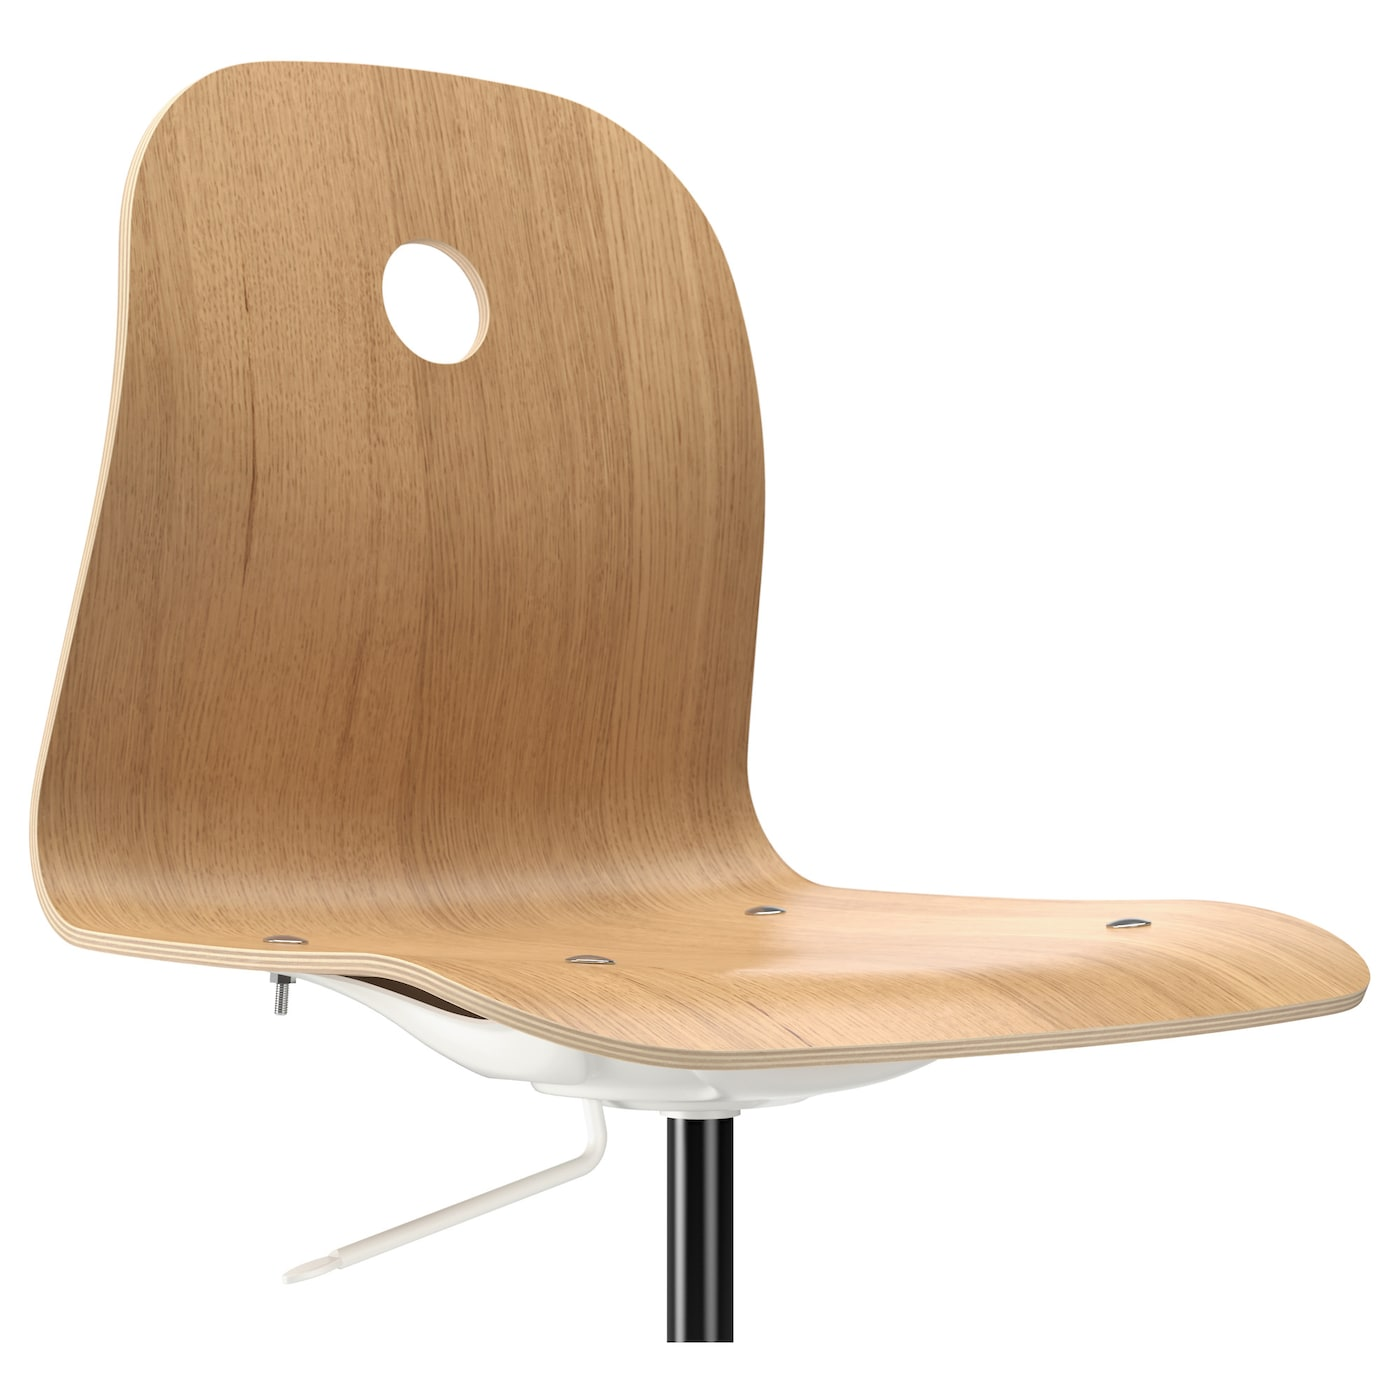 #9D682E IKEA VÅGSBERG/SPORREN Swivel Chair You Sit Comfortably Since The  with 2000x2000 px of Most Effective Ikea Oak Chairs 20002000 wallpaper @ avoidforclosure.info